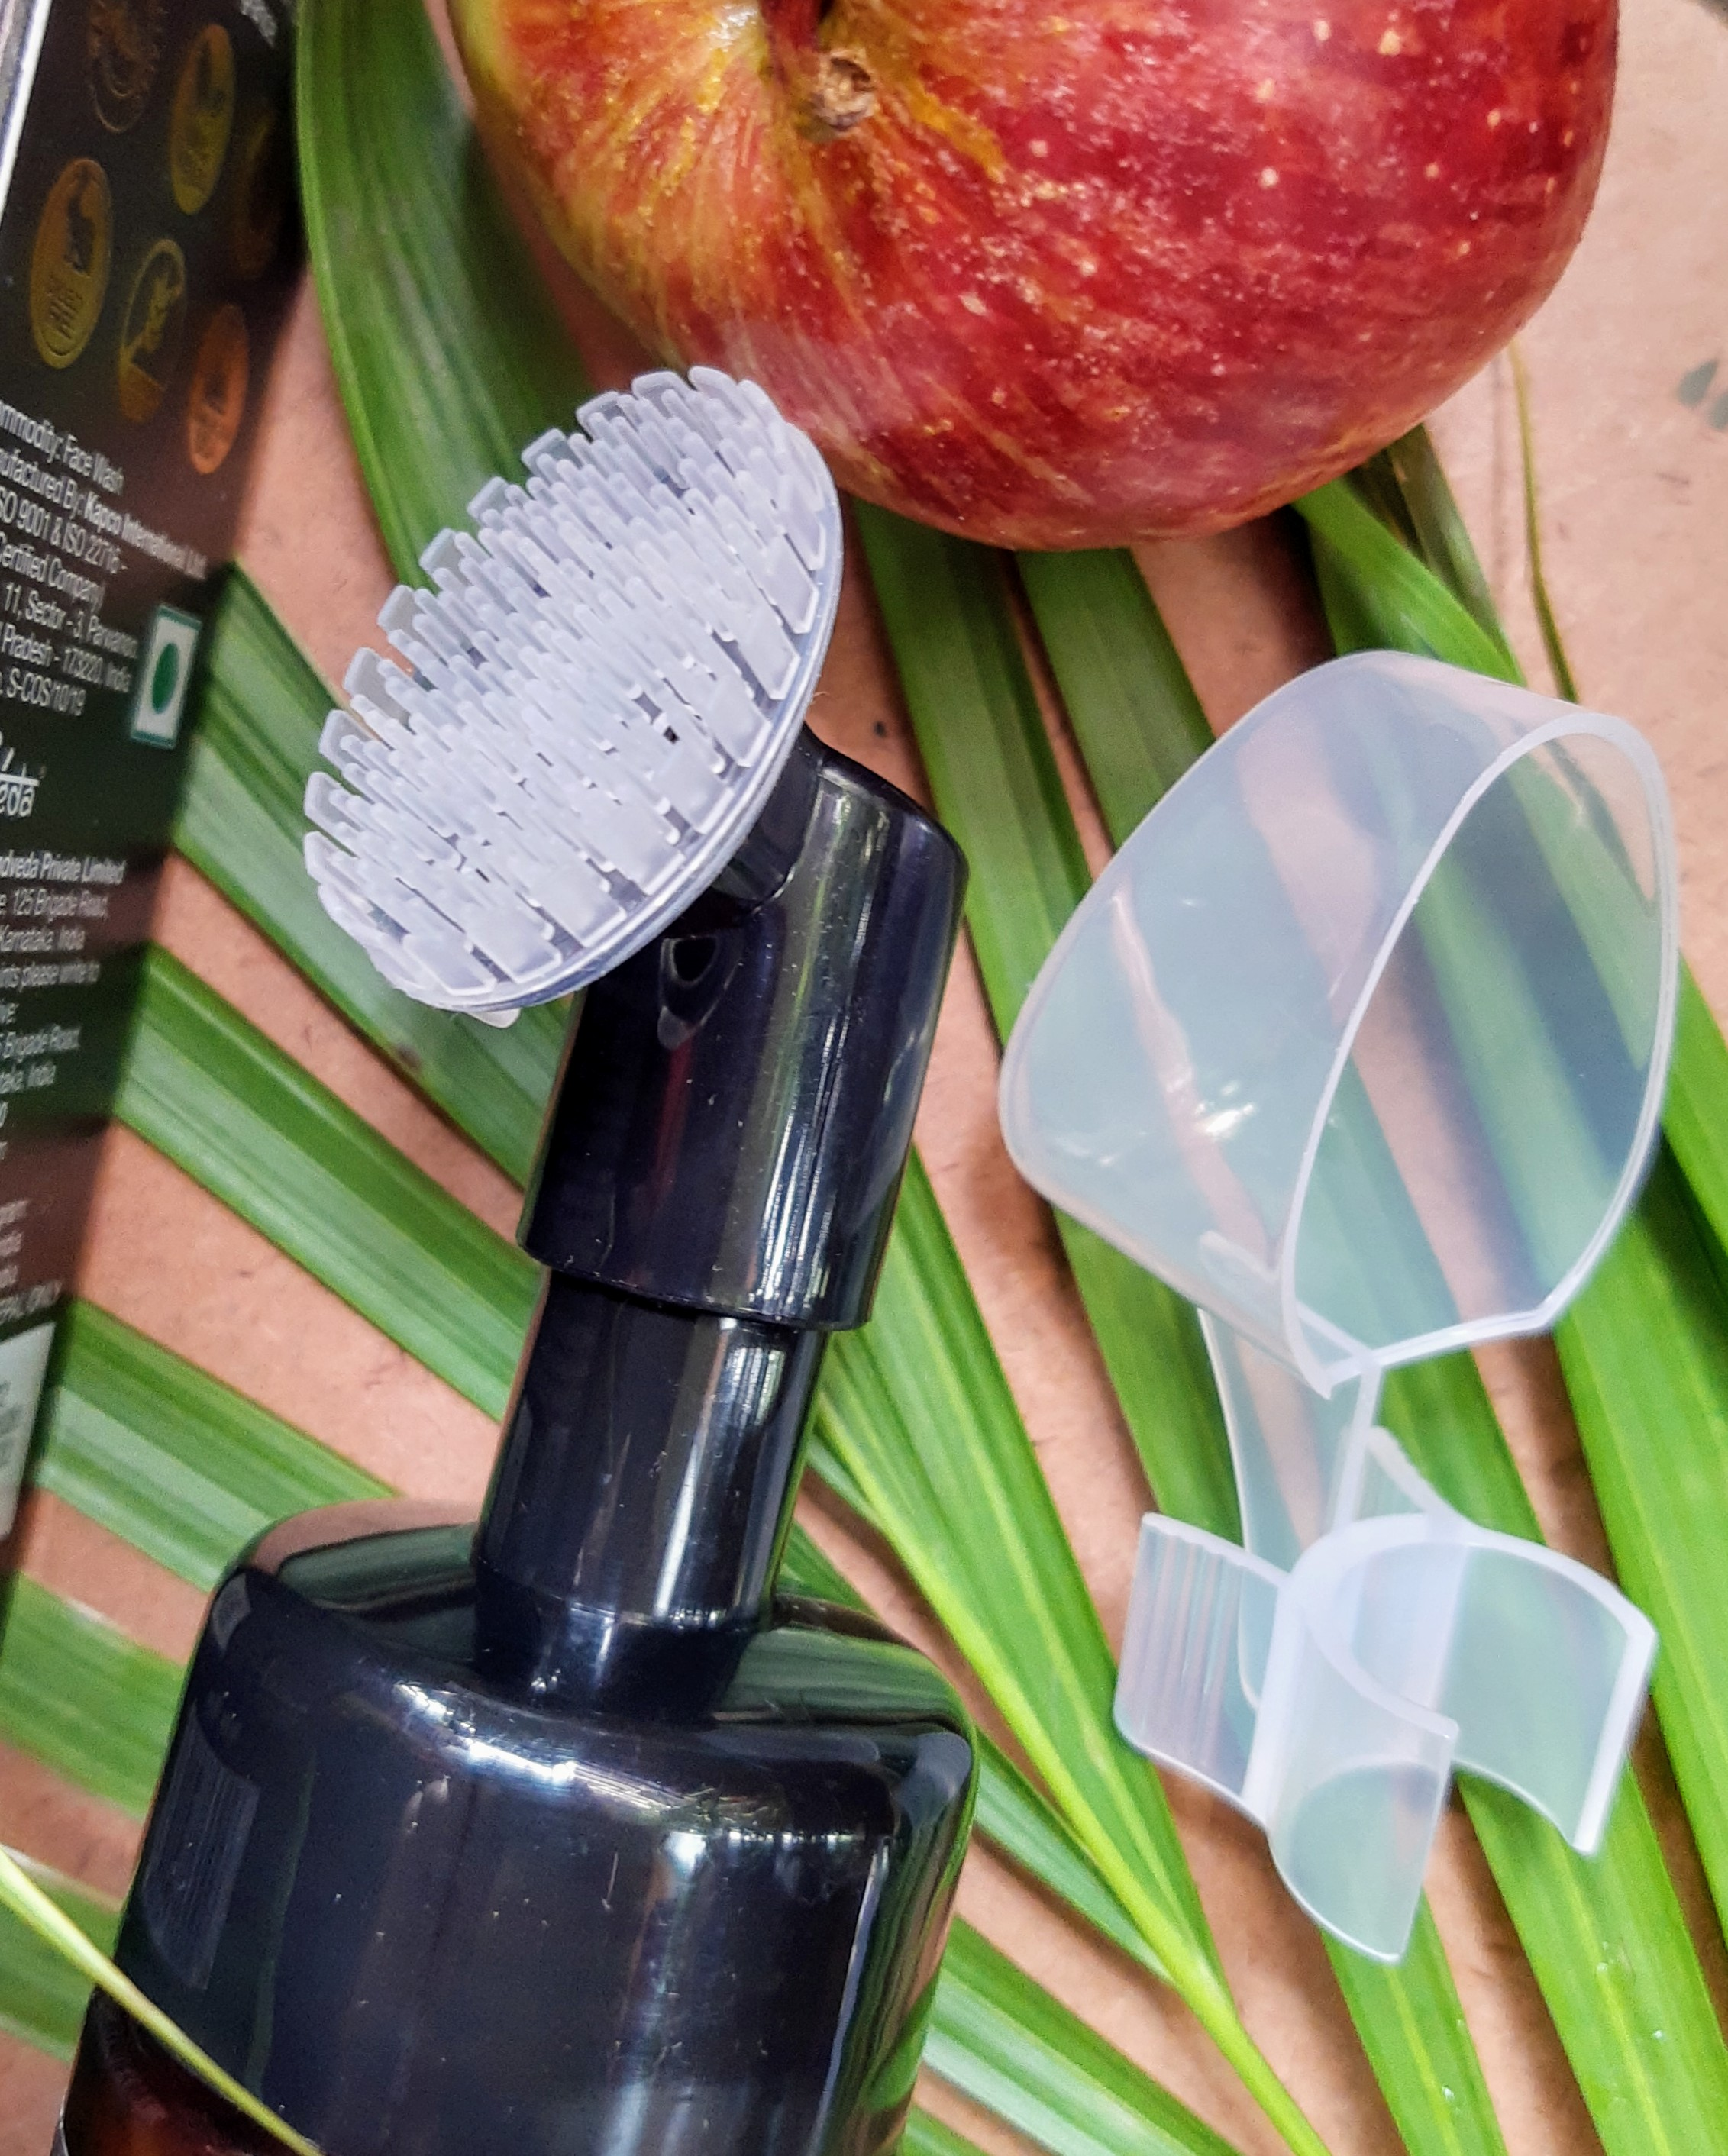 packaing of WOW Apple Cider Vinegar Foaming Face Wash with the built-in brush